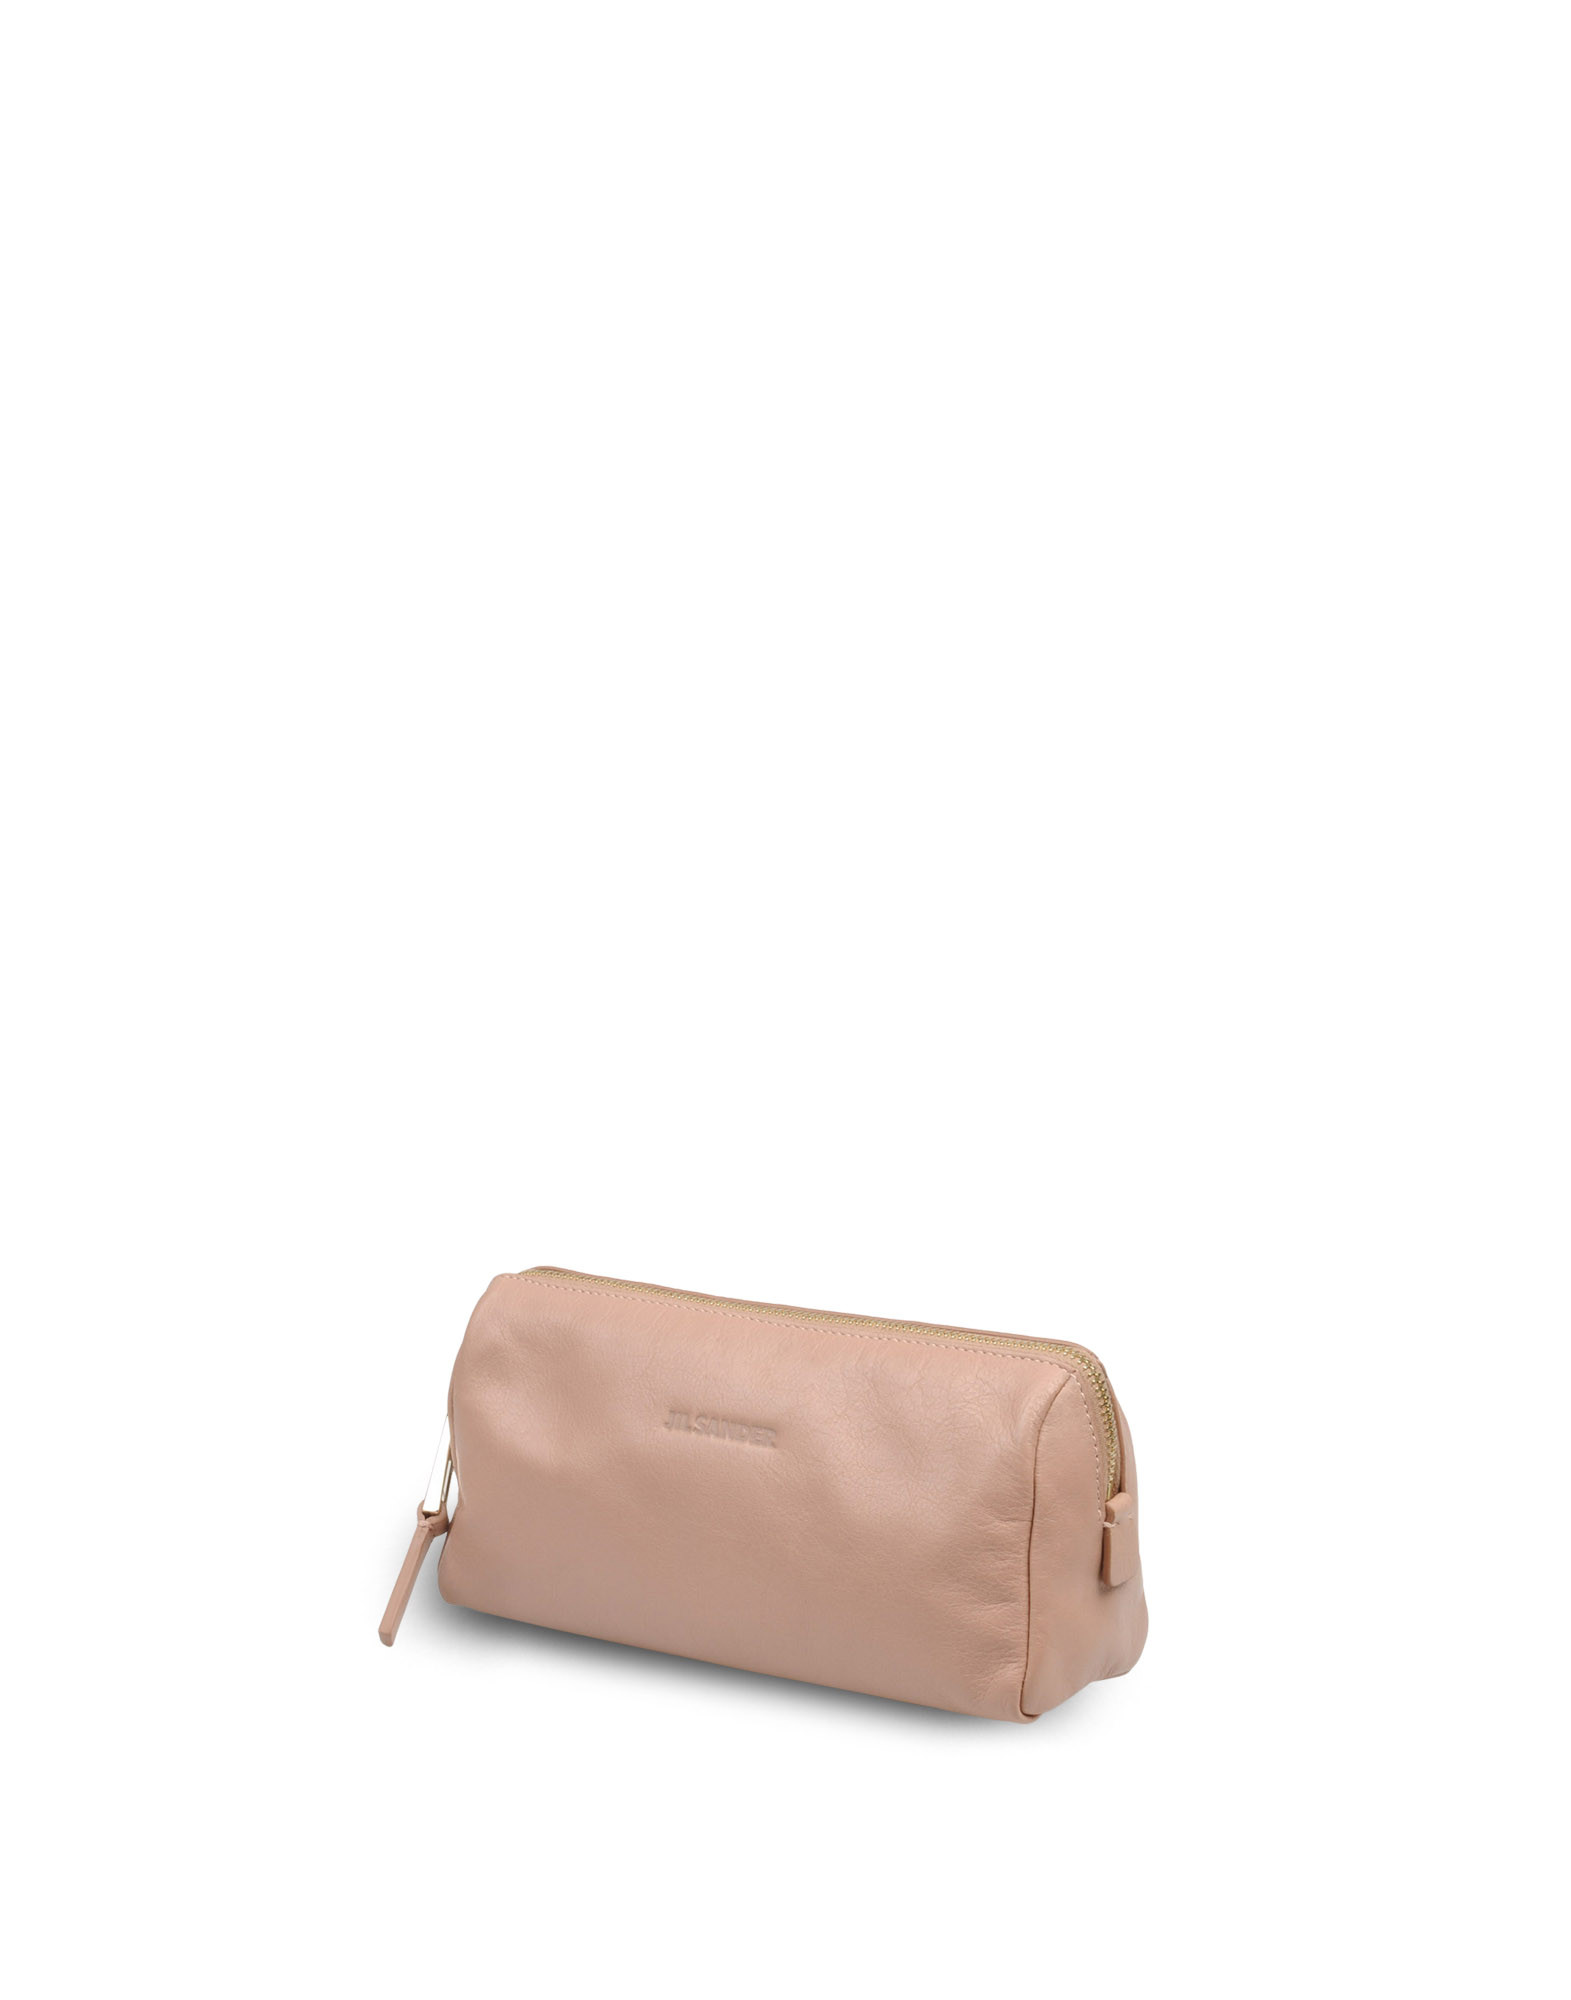 Beauty Case - JIL SANDER Online Store